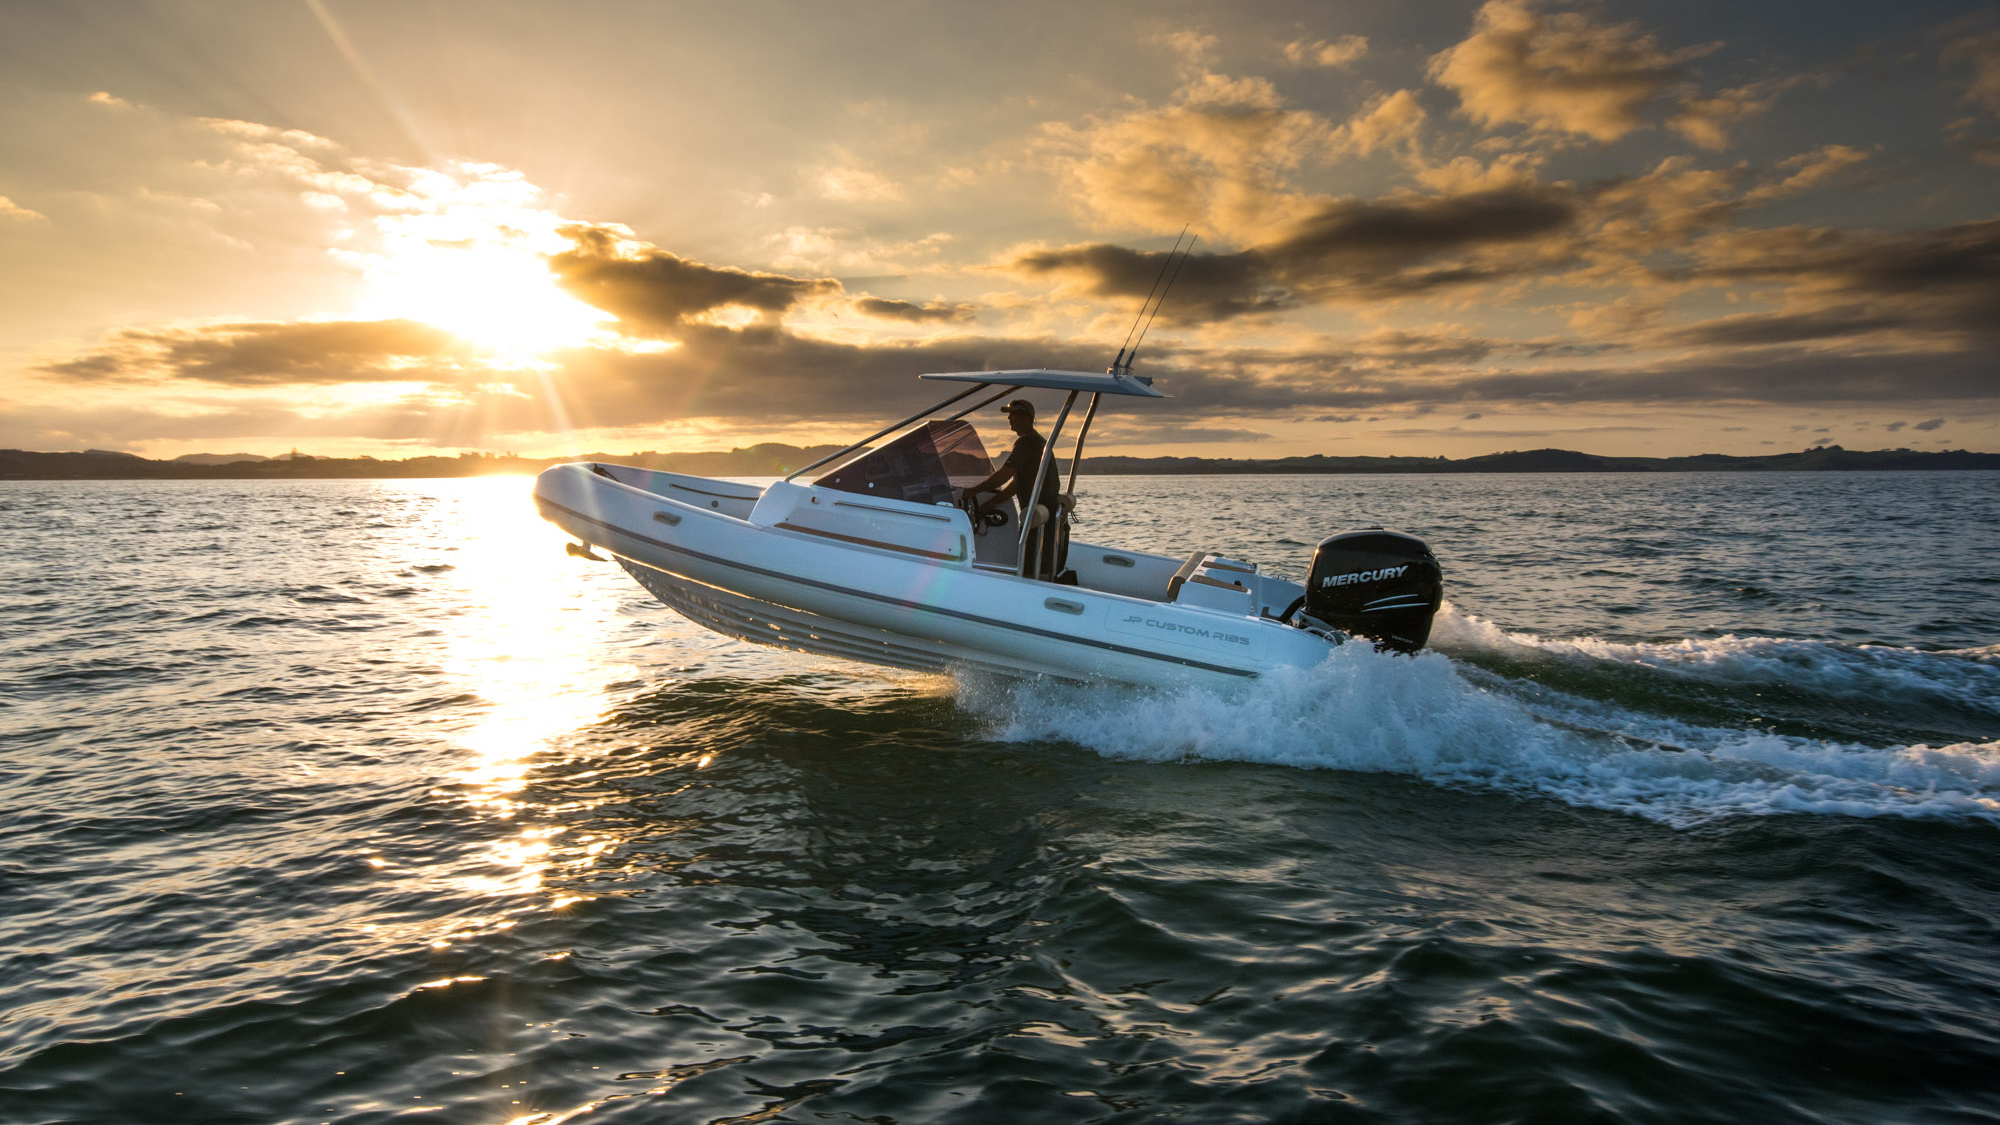 CUSTOM 700 DIVE - The JP RIBS Custom 700 Dive was created as a dive boat that is equal parts performance, comfort and function. Warm, dry and spacious areas provide protection from the elements, while extensive storage…